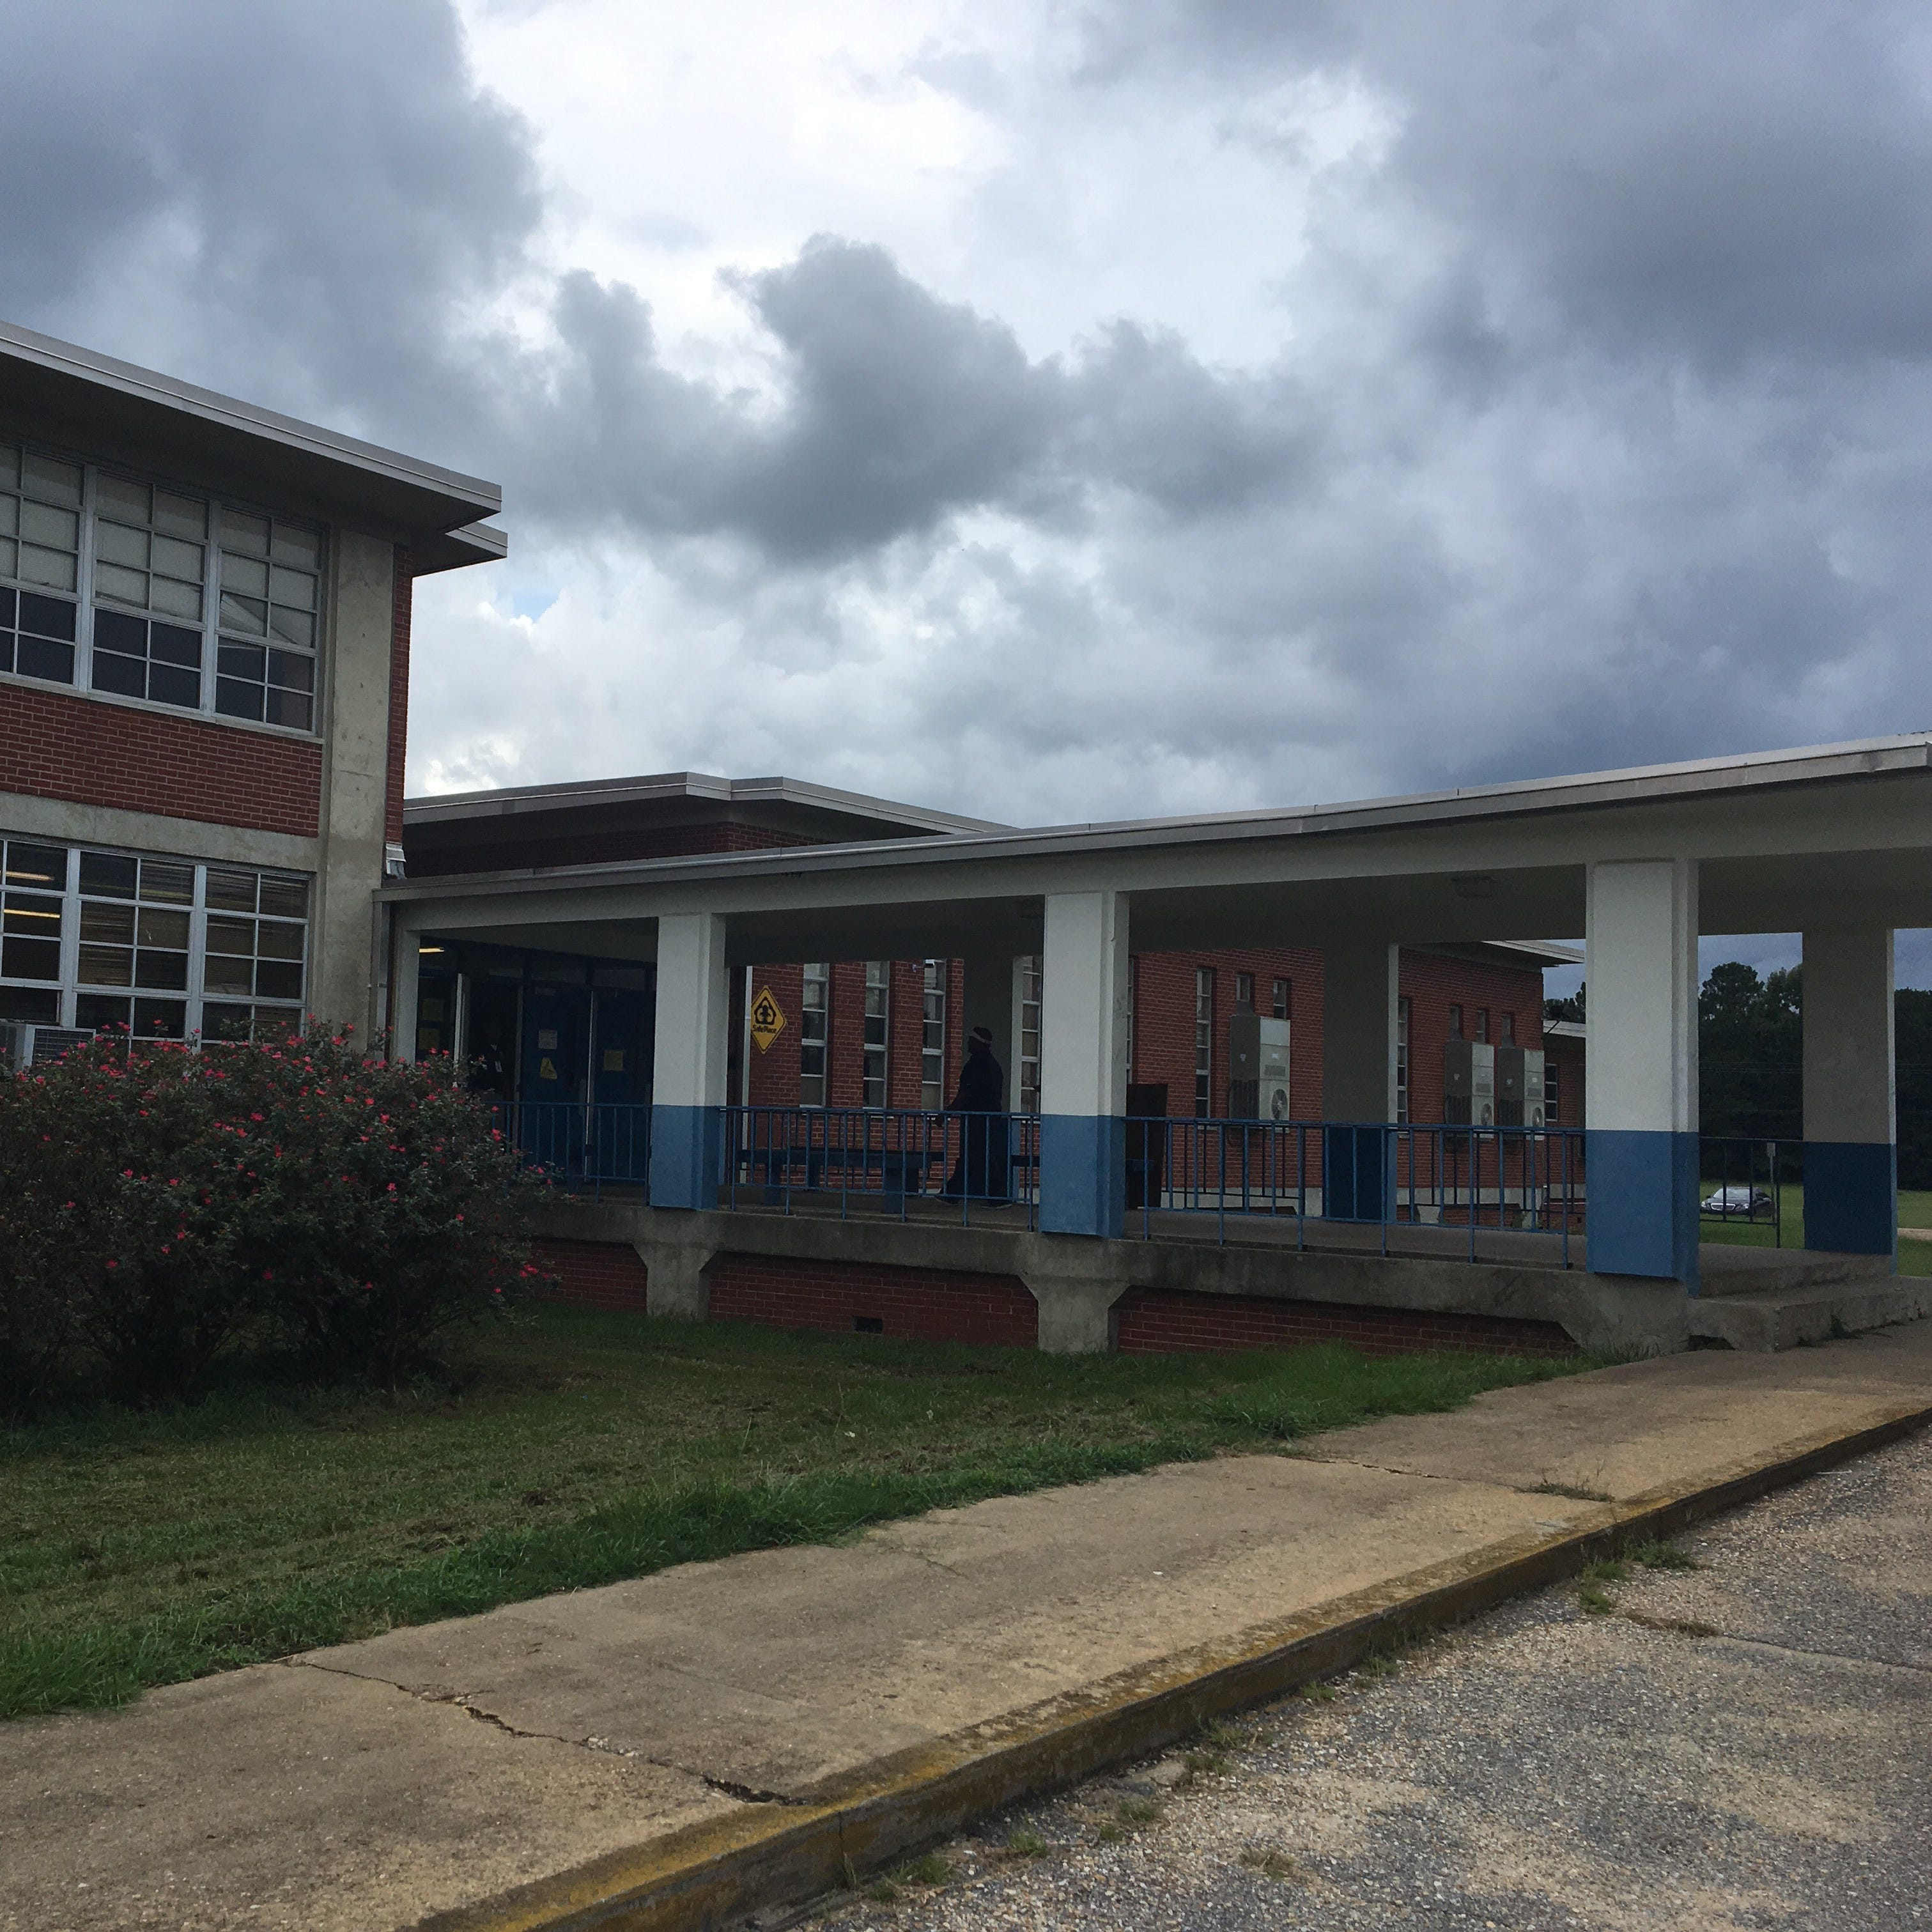 Hayneville Road School: What BTW parents, teachers and students need to know about the school